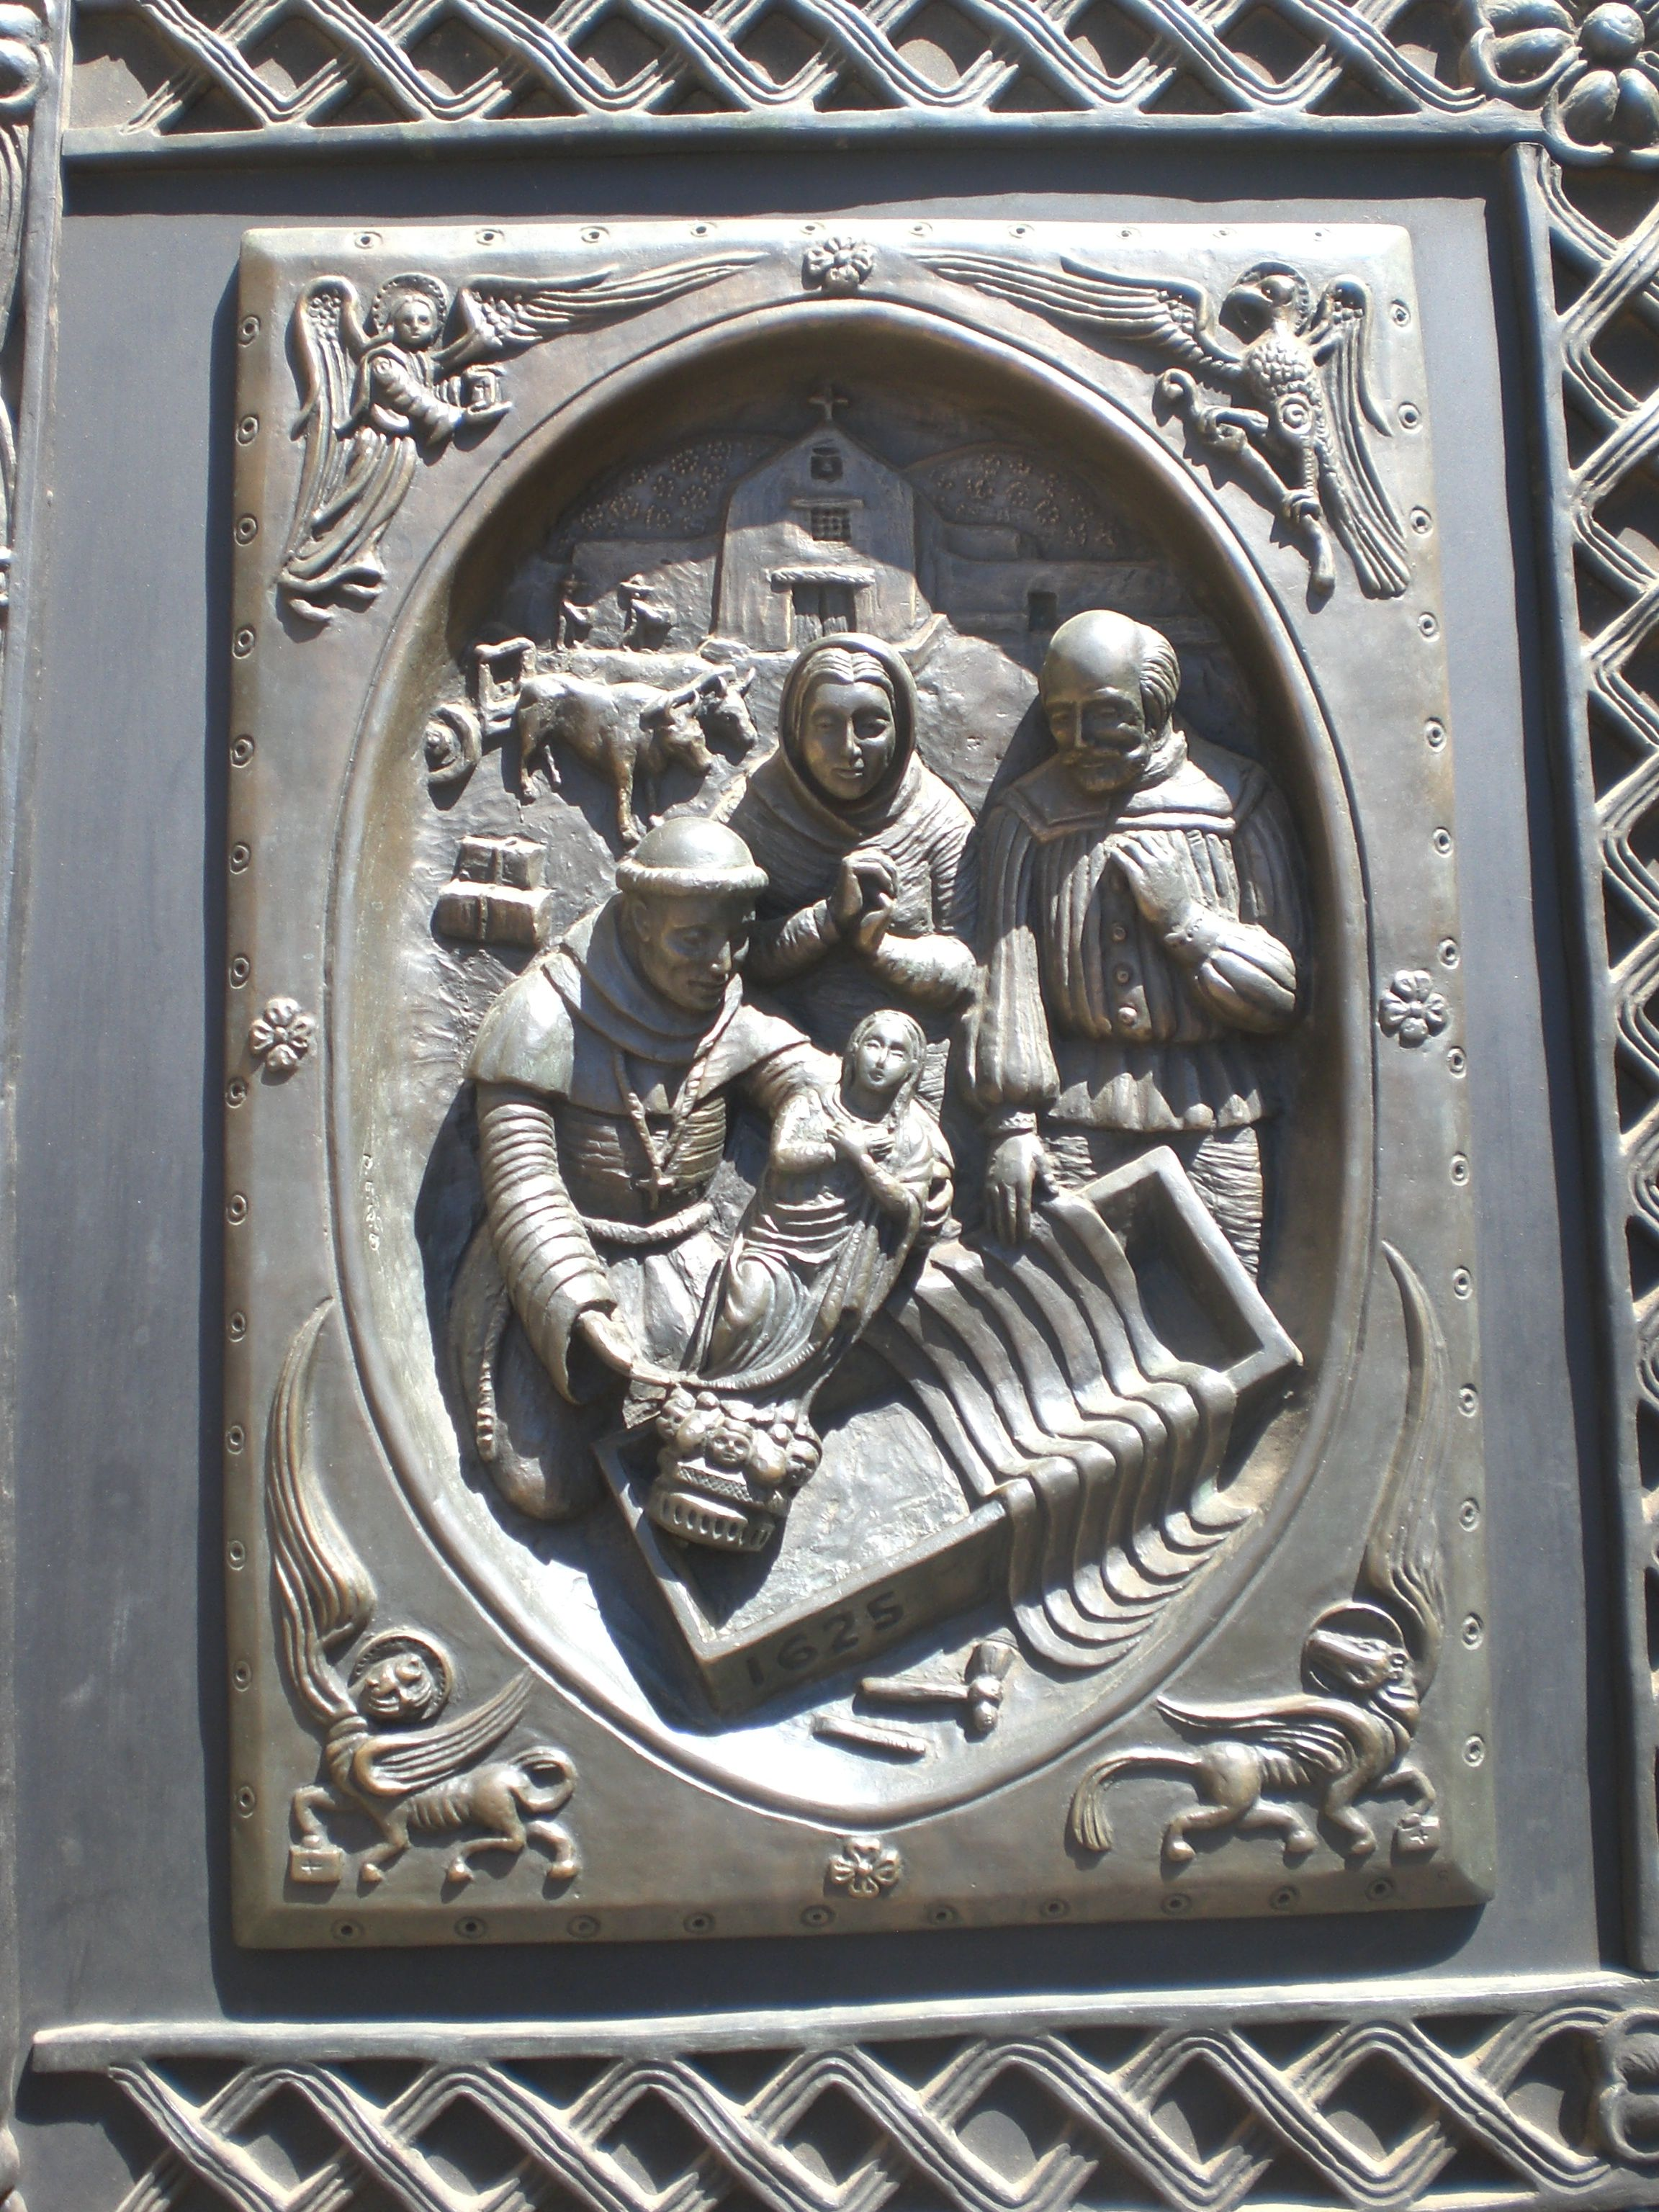 During the restoration of 1986, new doors were created, each with ten bronze panels that portray events in the history of the church in Santa Fe.